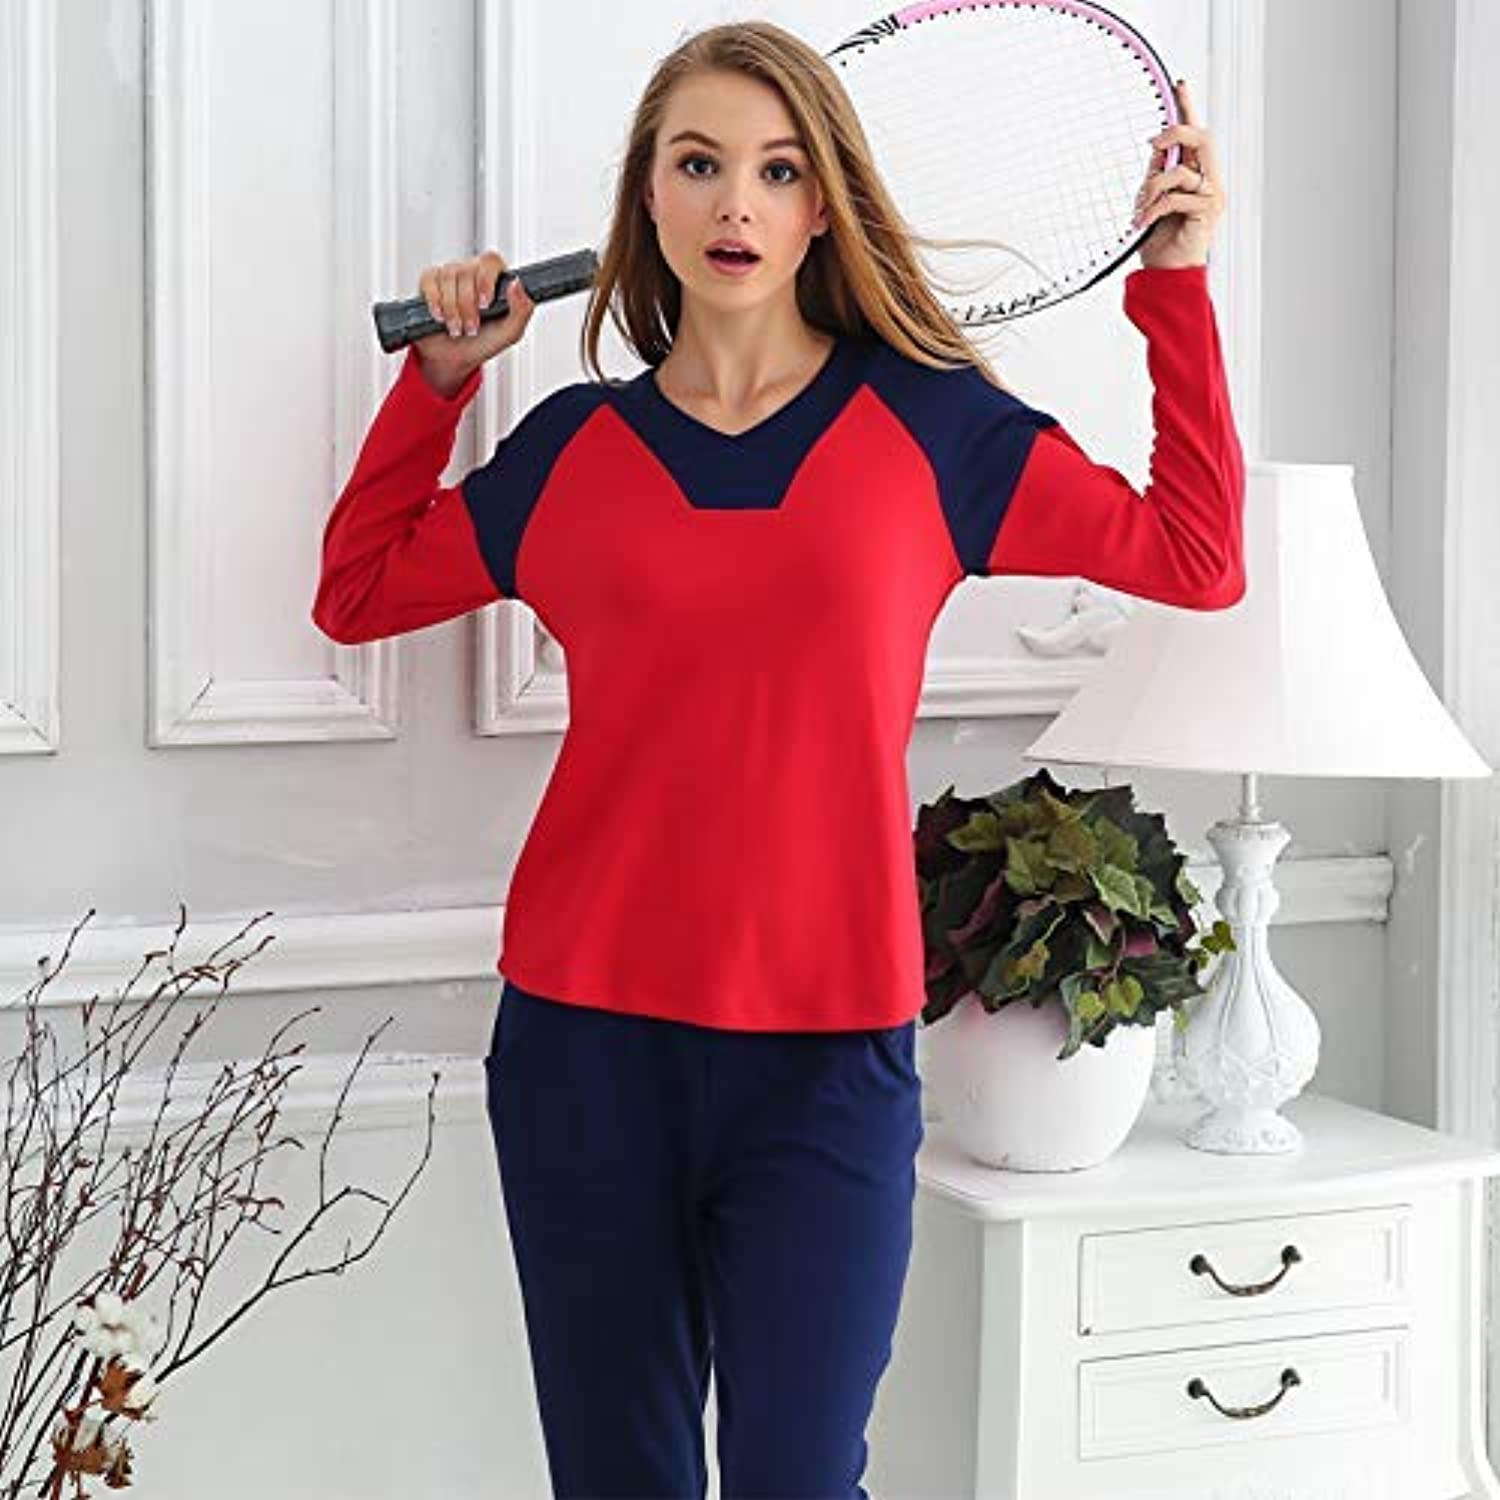 Cute Pajamas Spring and Autumn Korean Women's Loose Cotton Pajamas LongSleeved Casual Sports Cotton can be Worn Outside Home Service Suits (color   Red, Size   M) Sexy Sleepwear